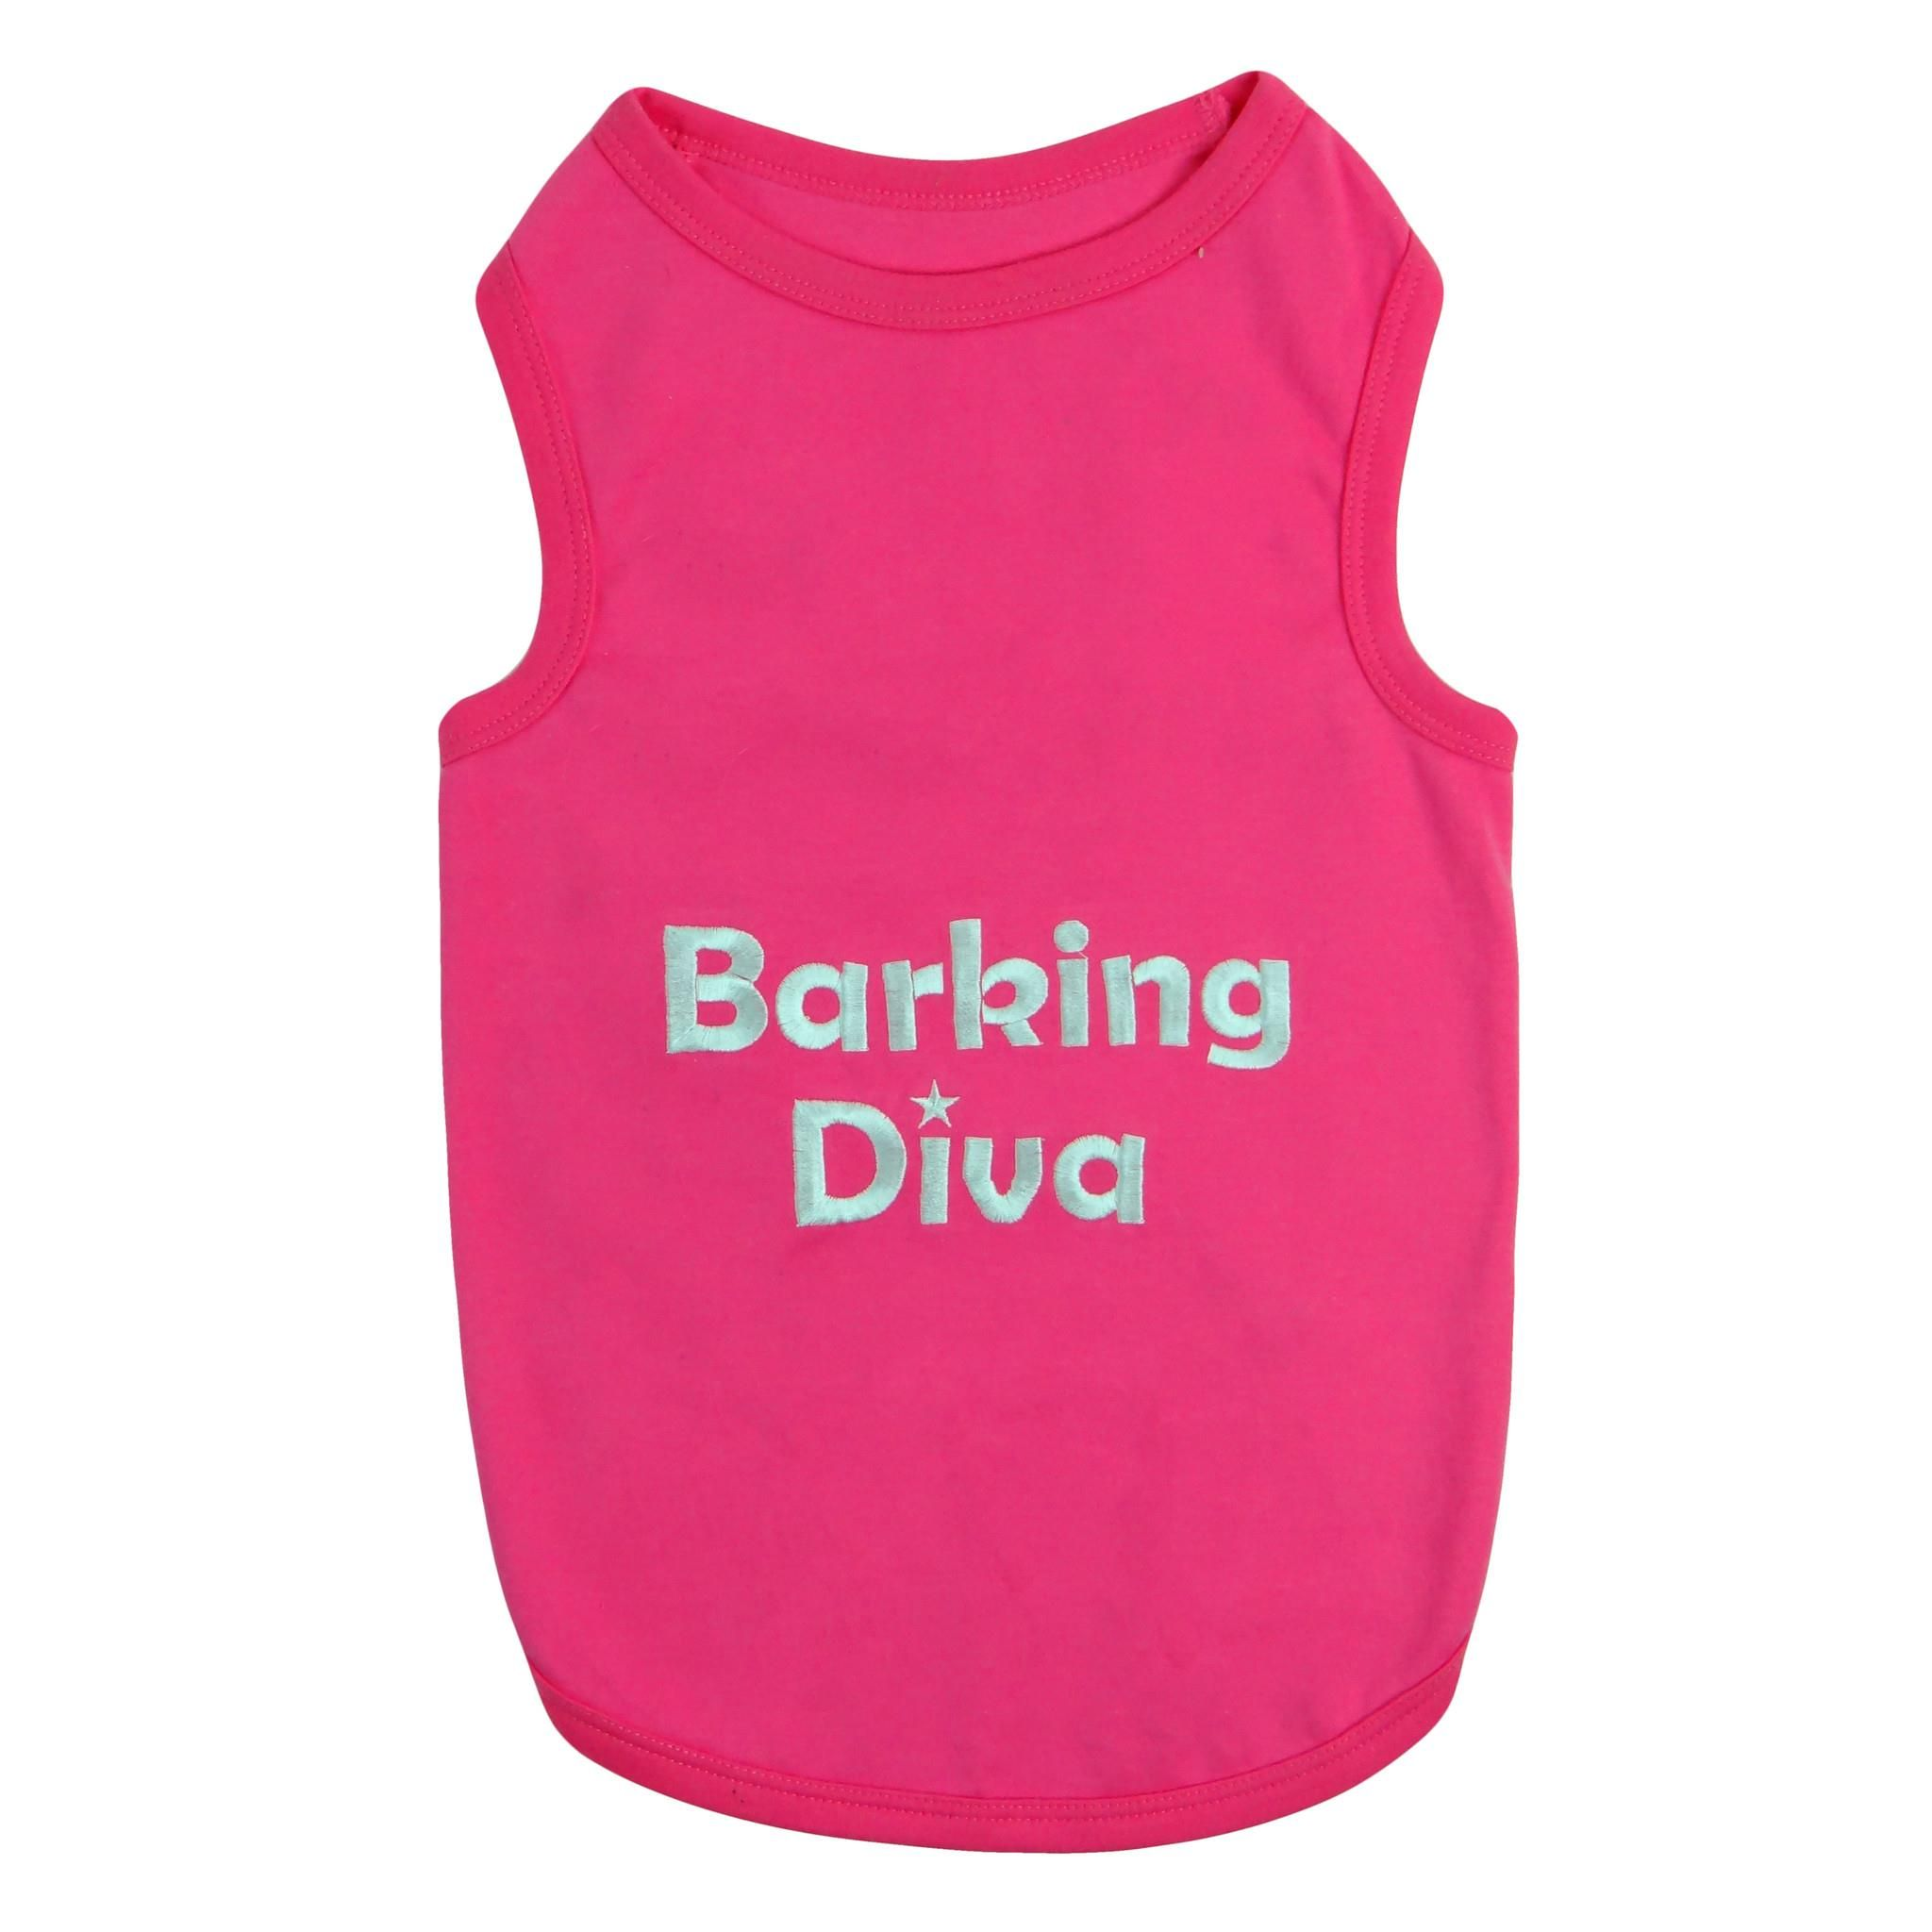 Pet Apparel | Barking Diva Pet Apparel  $12.99 Embroidered Saying Comfortable 100% Cotton Soft, high-quality substantial knit fabric Machine-washable for easy care Hot Pink